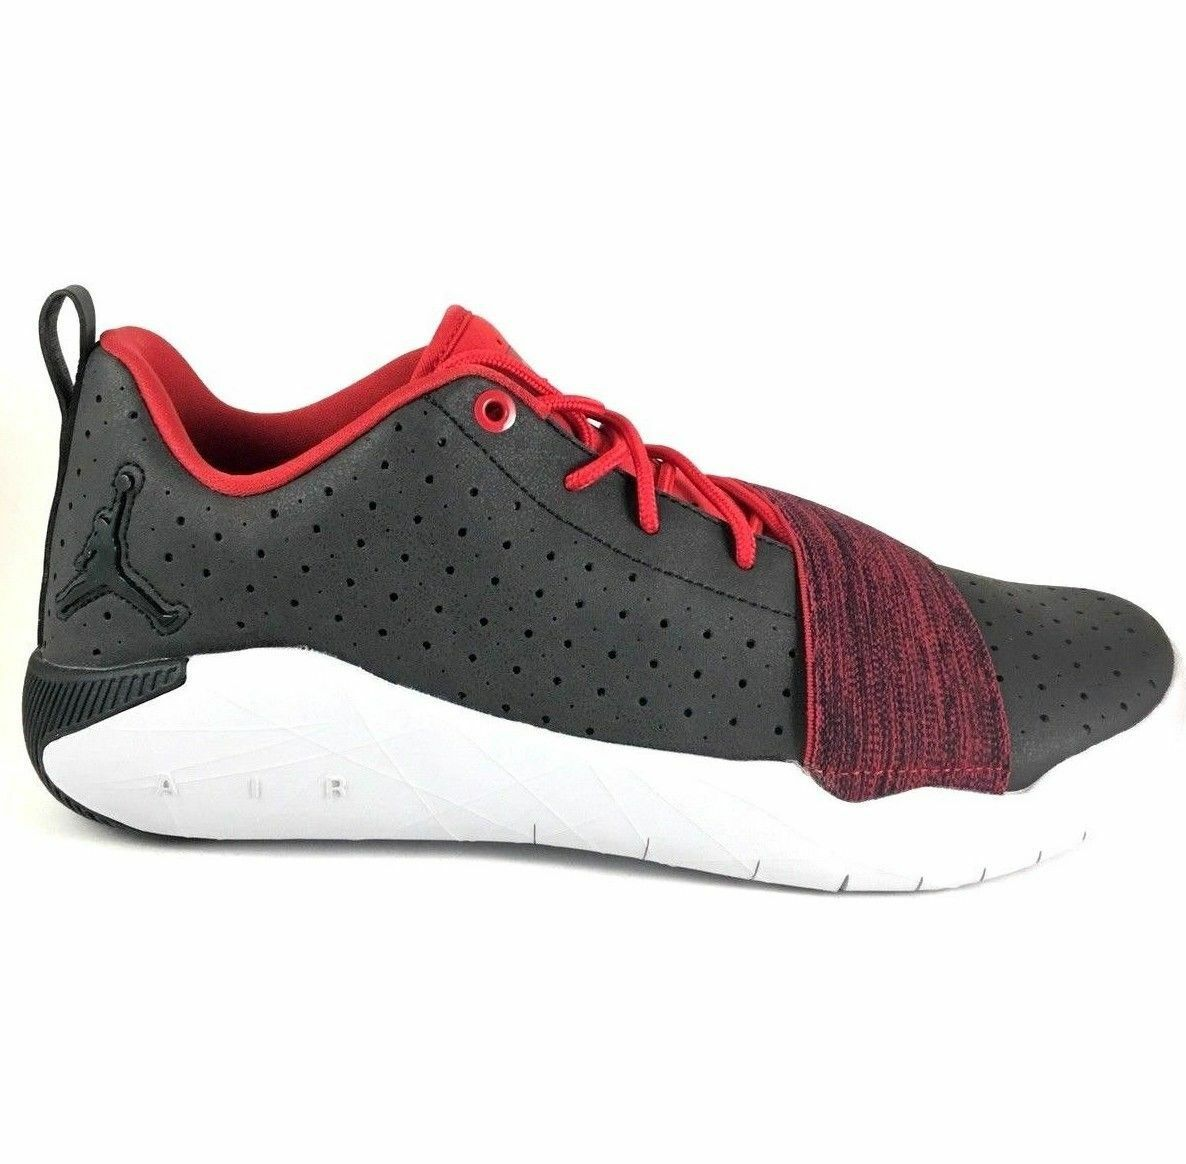 New Nike Jordan 23 Breakout Men's Shoes Grey Wolf Red 881449 002 Cheap women's shoes women's shoes